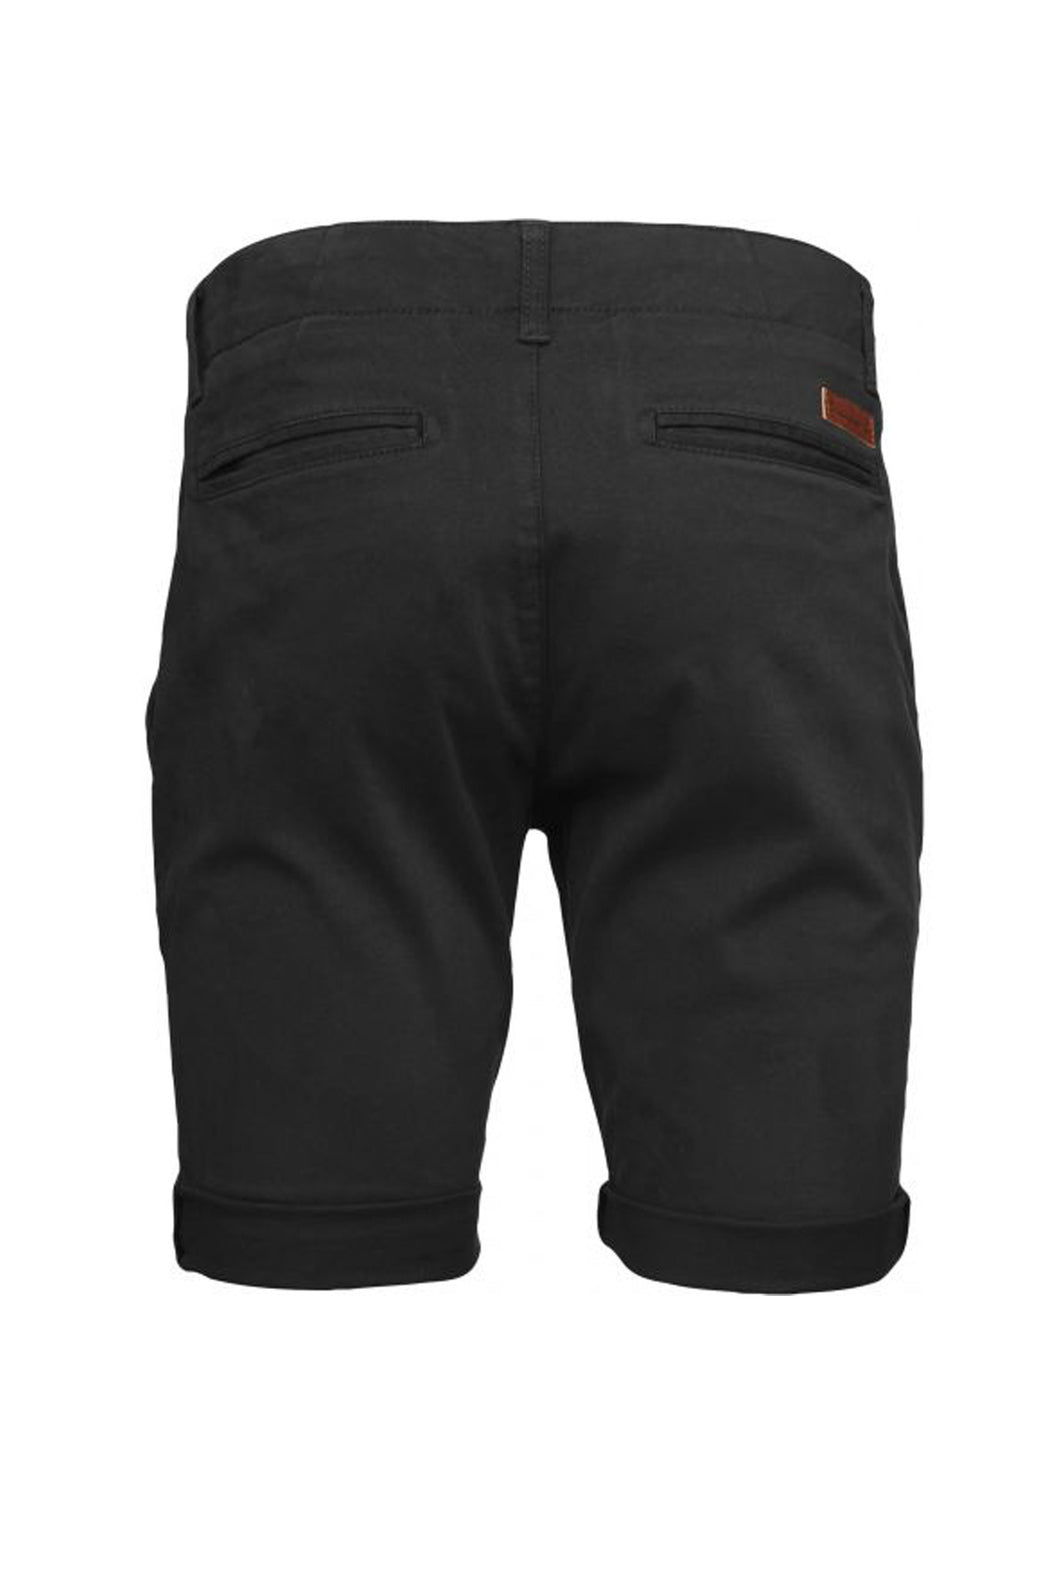 STRETCH CHINO Shorts phantom